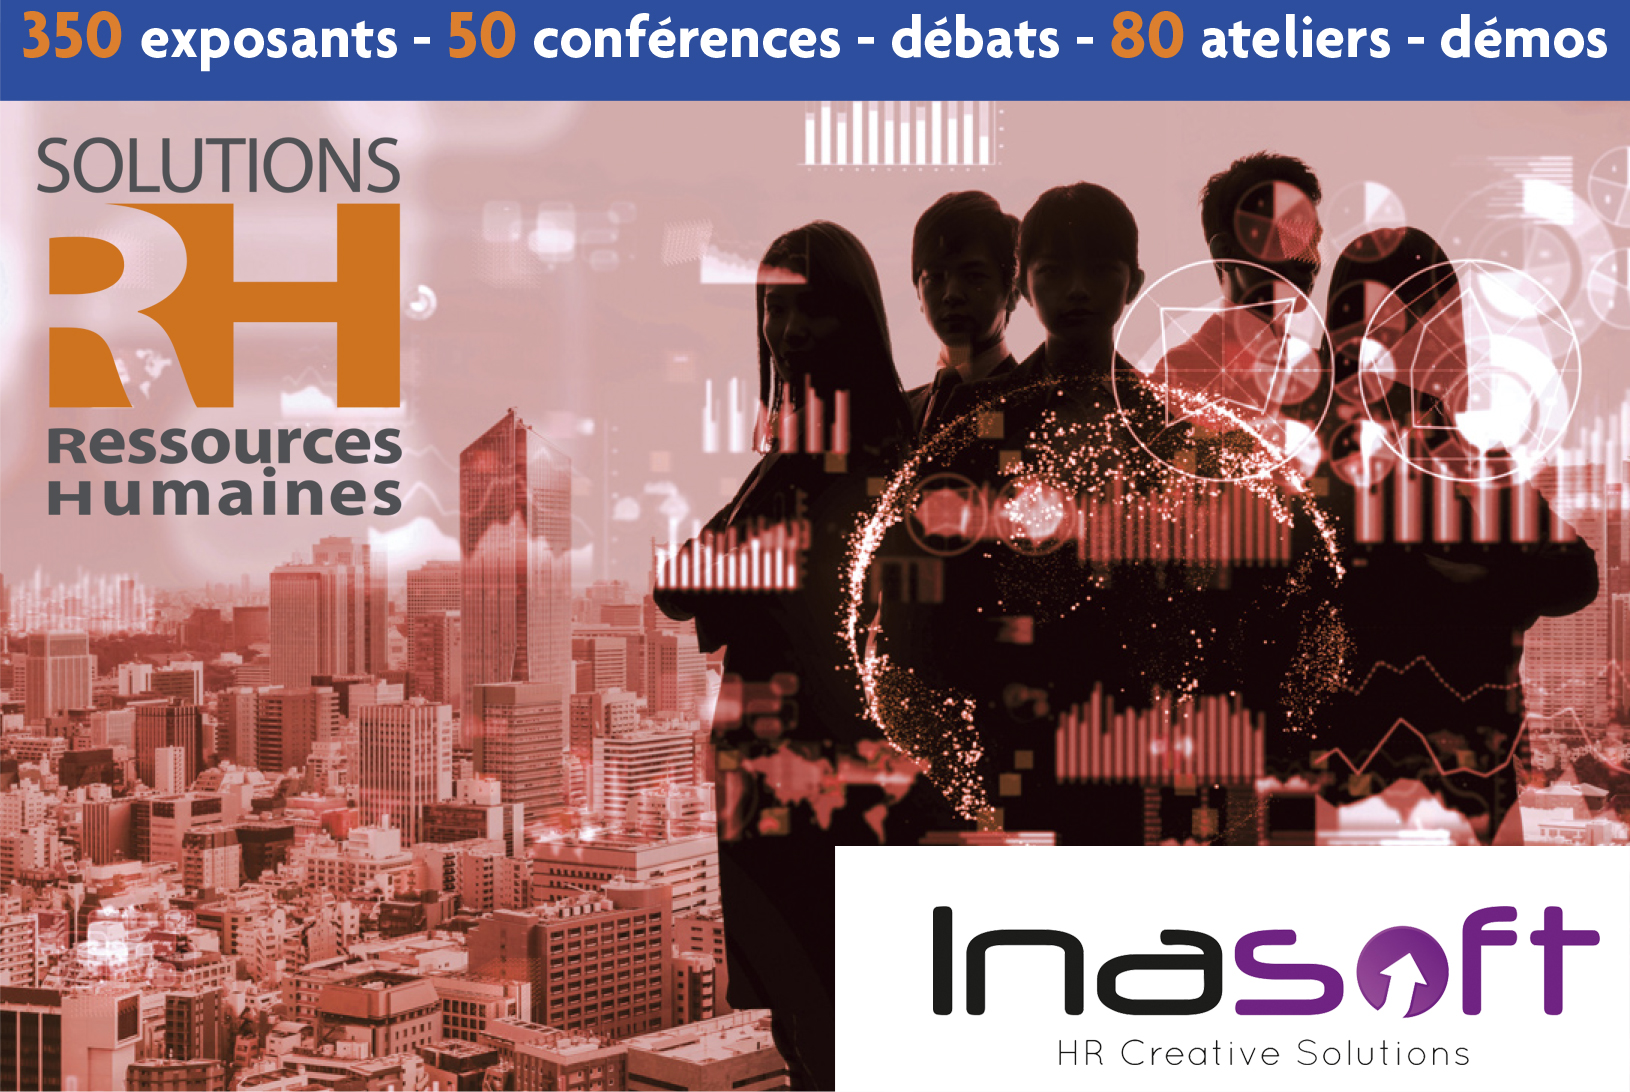 Inasoft exposera au Salon « Solution RH 2020 » à Paris les 17, 18 et 19 mars